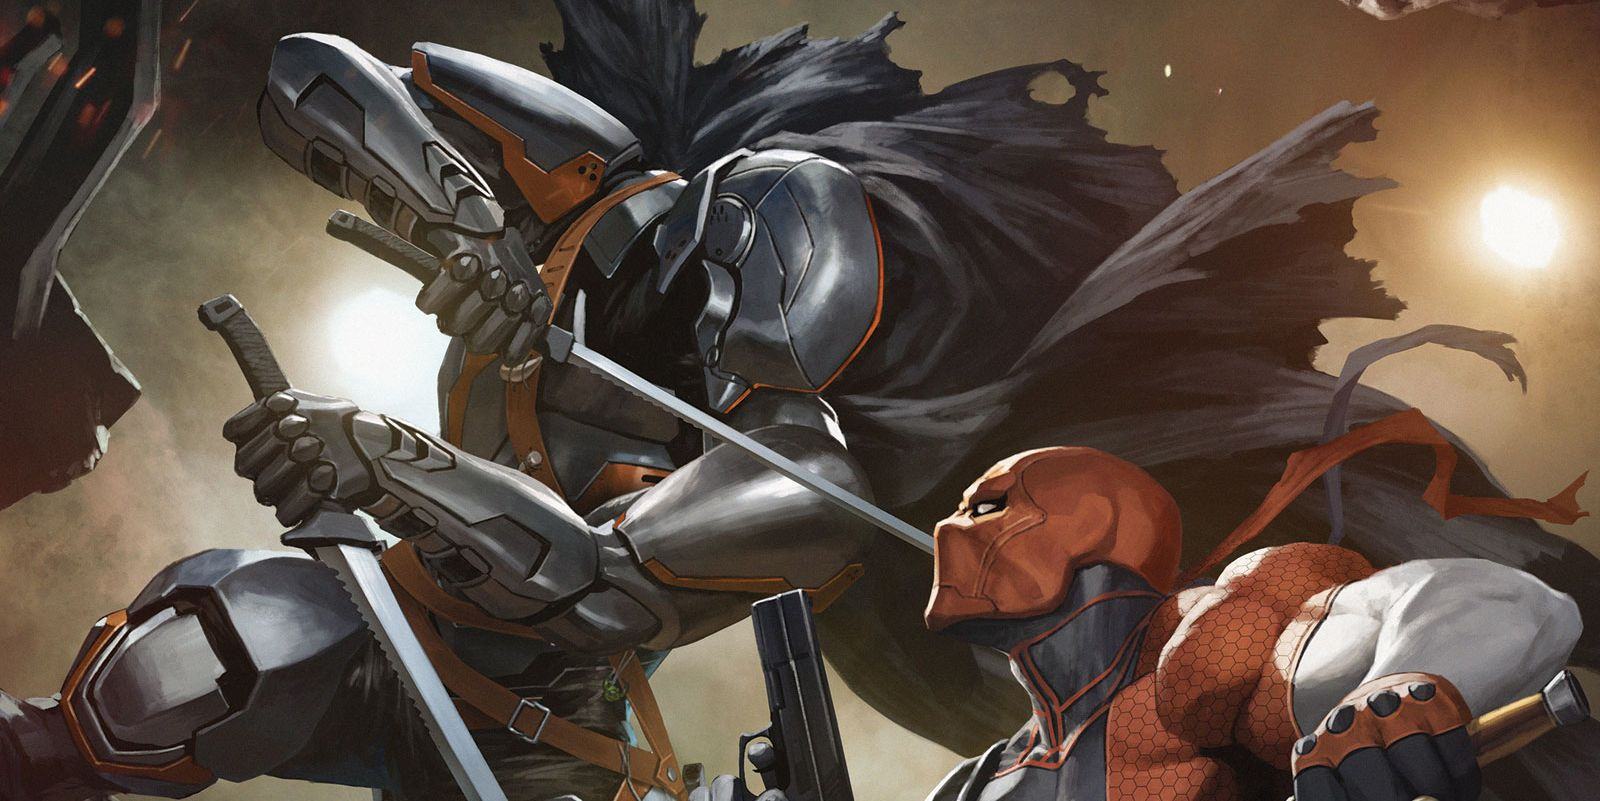 Deathstroke #50 Is the DC Universe's Main Merc's Final Issue